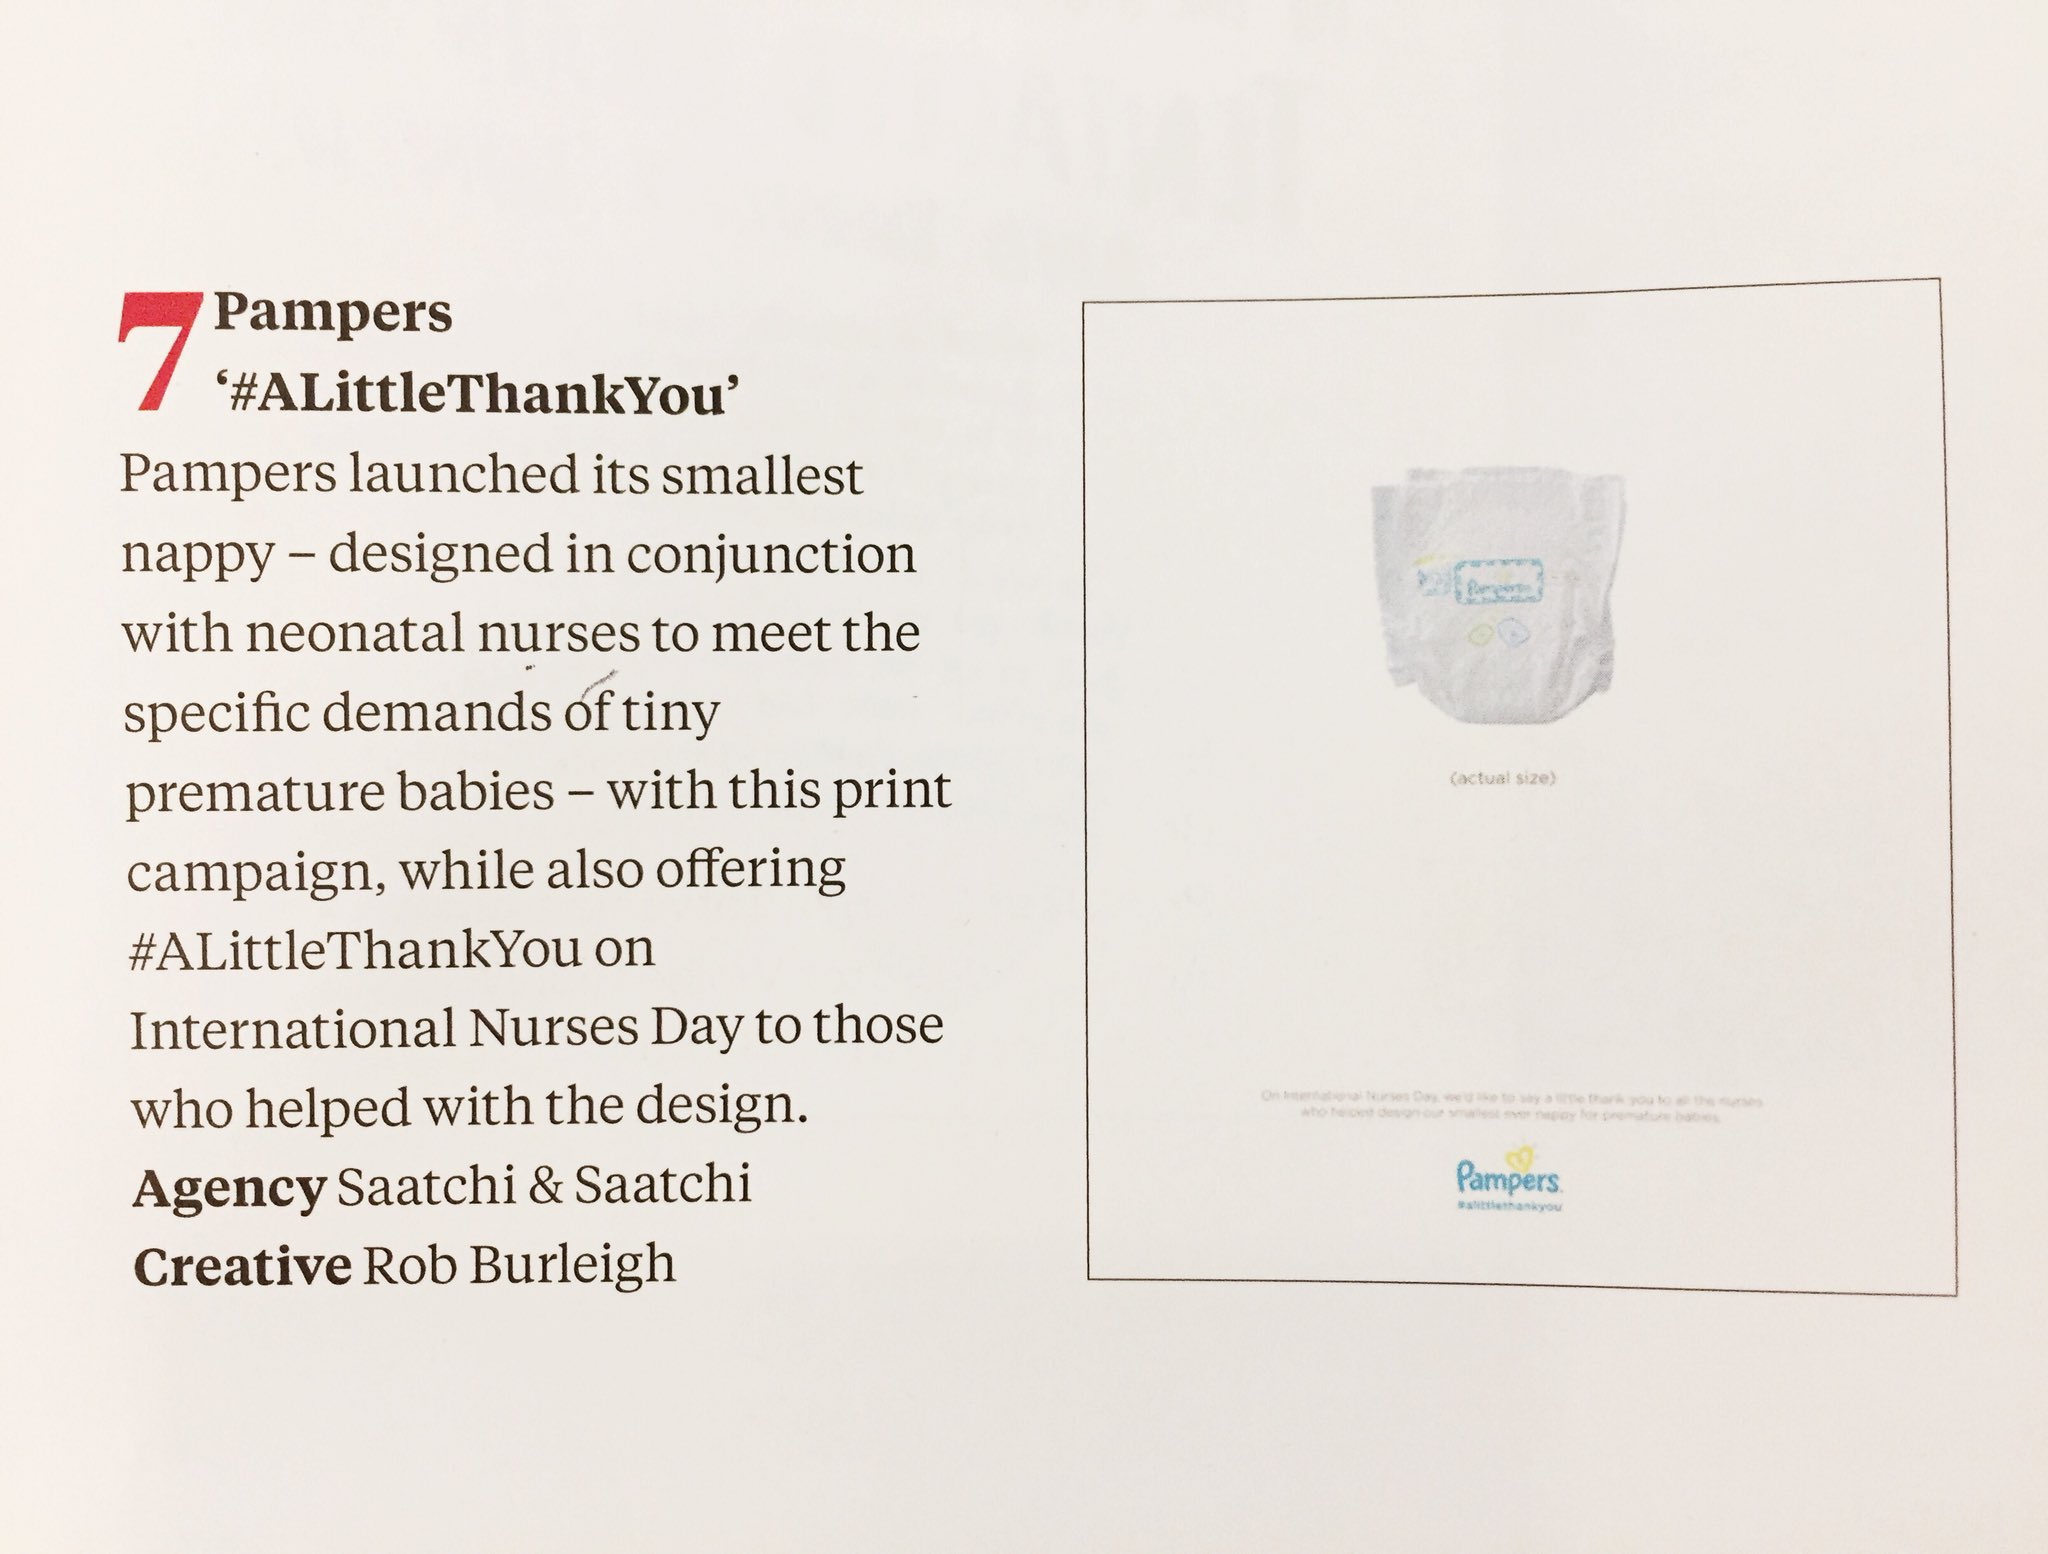 Ending the week on a high with our work for @Pampers in @Campaignmag's Top 10 2017 Press Ads #campaignannual https://t.co/MO9WKBVLP4